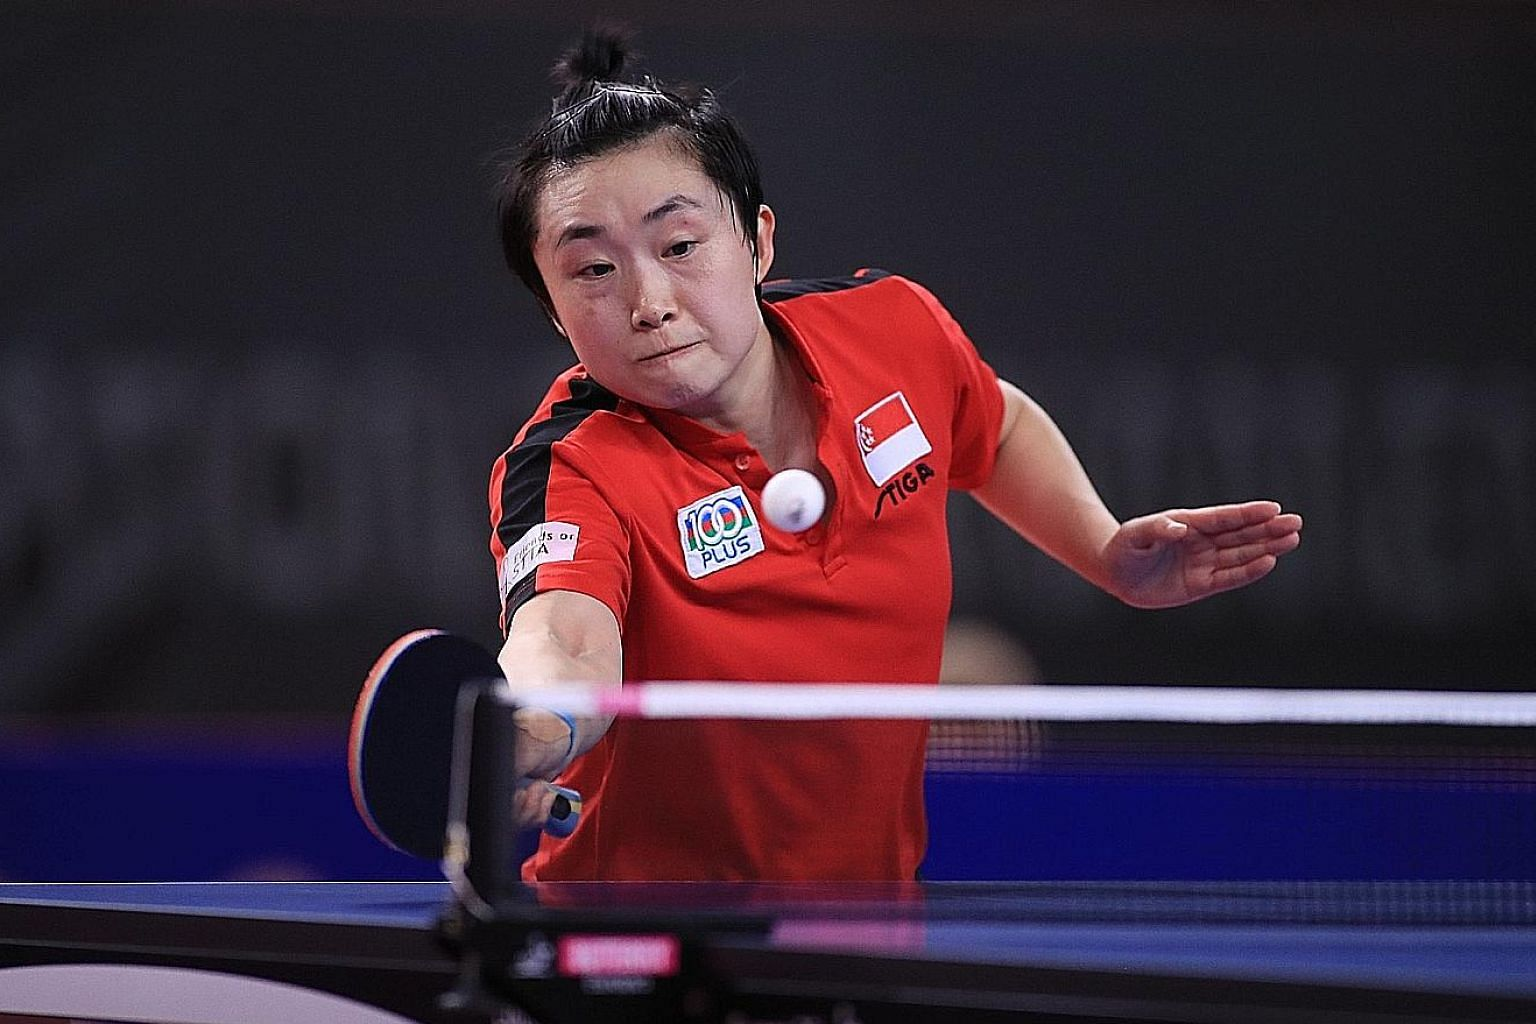 Feng Tianwei in Singapore's 3-1 win over Luxembourg in the last 32 at the Gondomar qualifiers. The team won Olympic silver in 2008 and bronze in 2012. PHOTO: INTERNATIONAL TABLE TENNIS FEDERATION